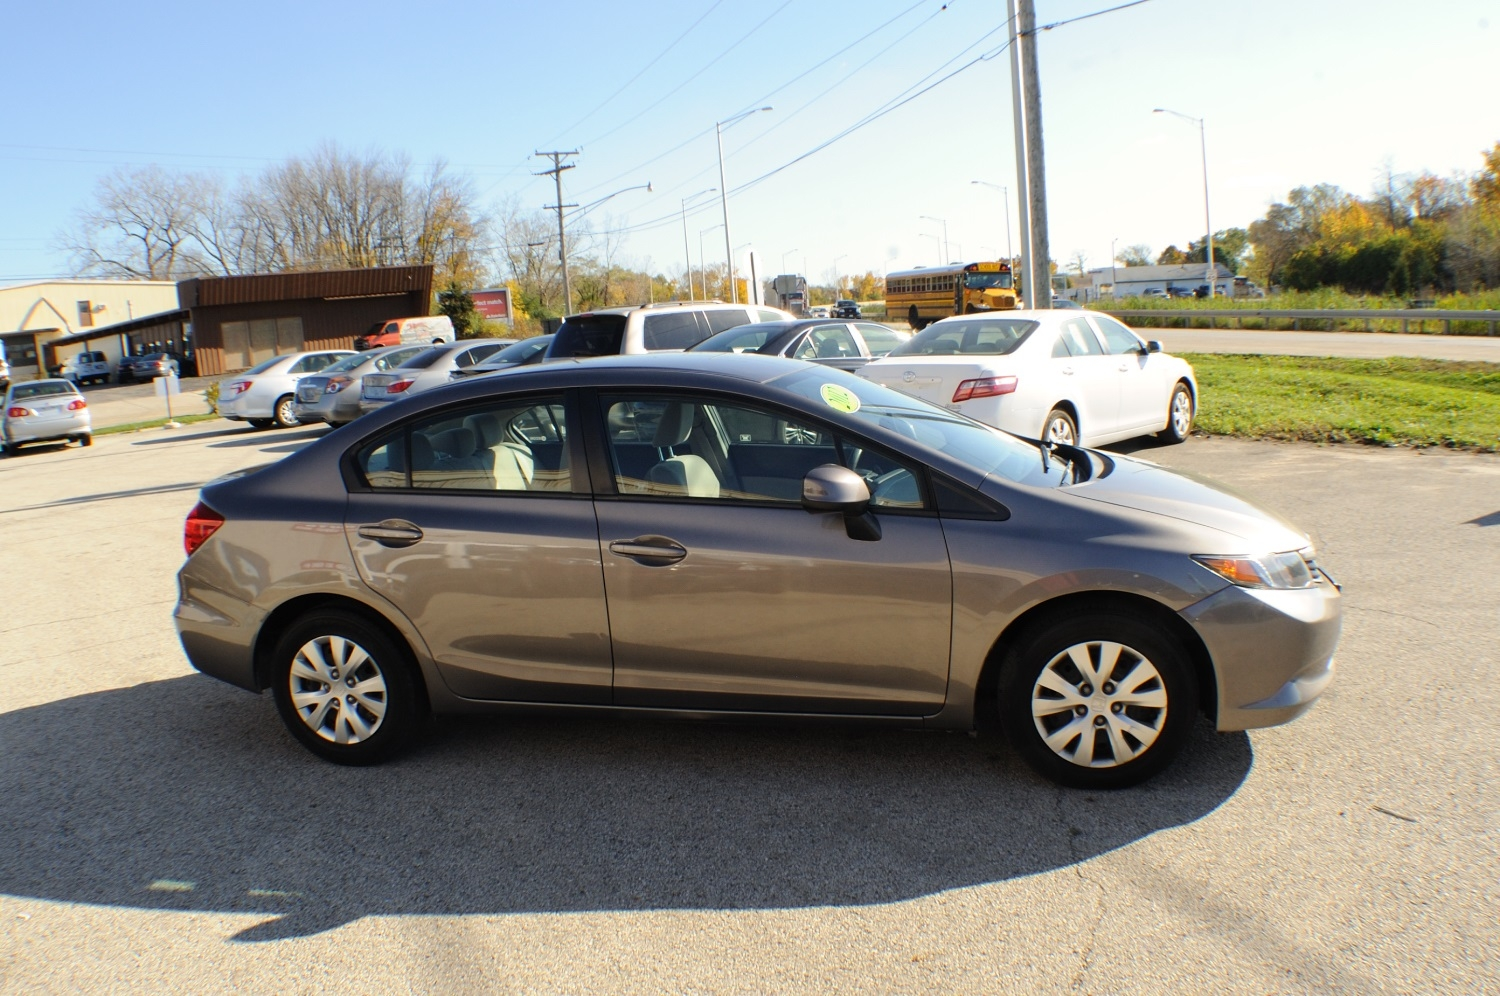 2012 Honda Civic LX Silver Sedan Used Car Sale Bannockburn Barrington Beach Park